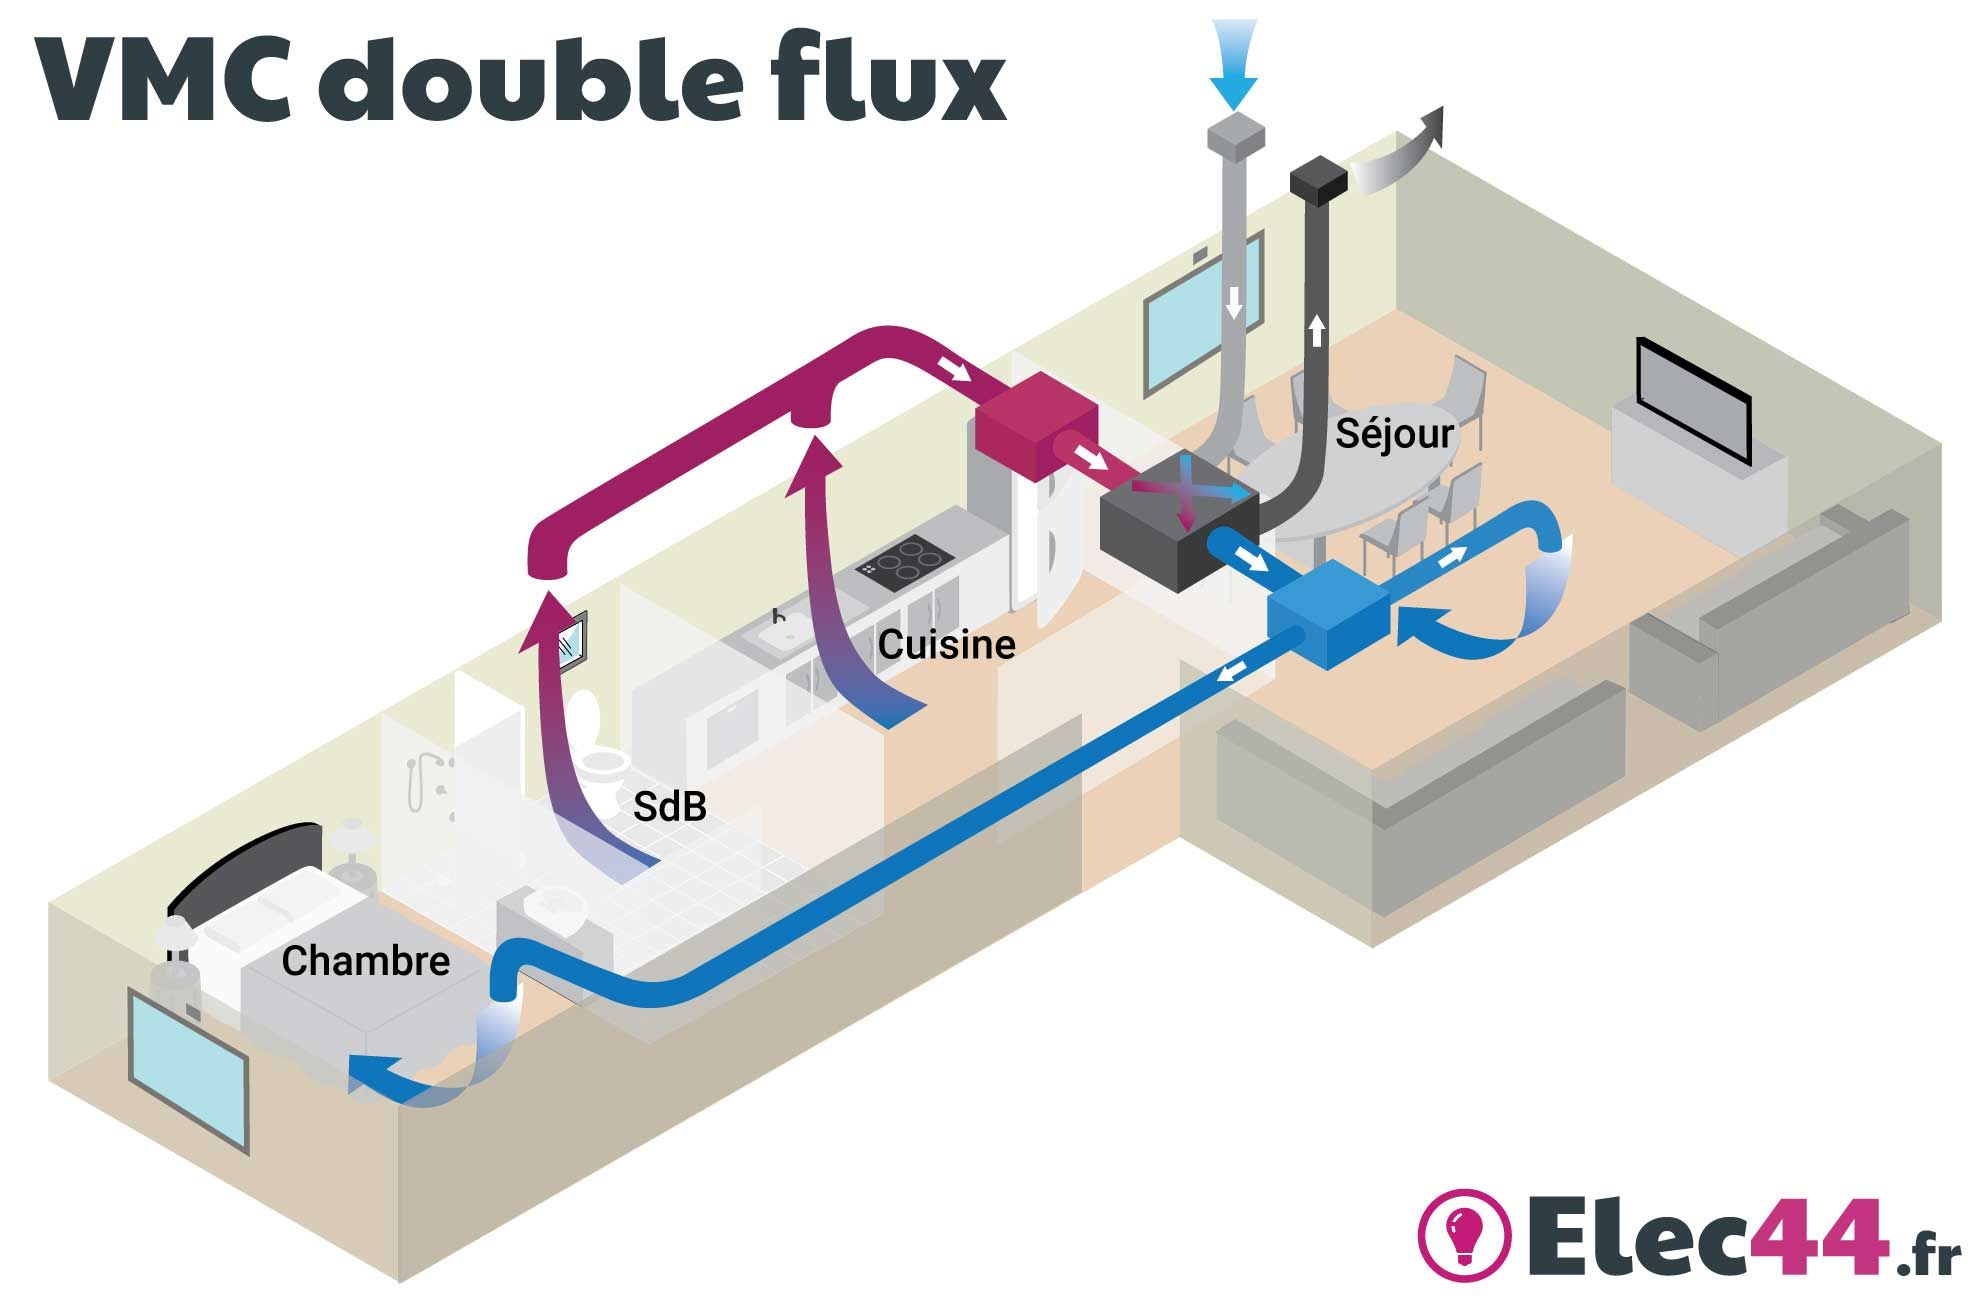 guide choisir sa vmc simple flux ou double flux sas ForTransformer Vmc Simple Flux En Double Flux